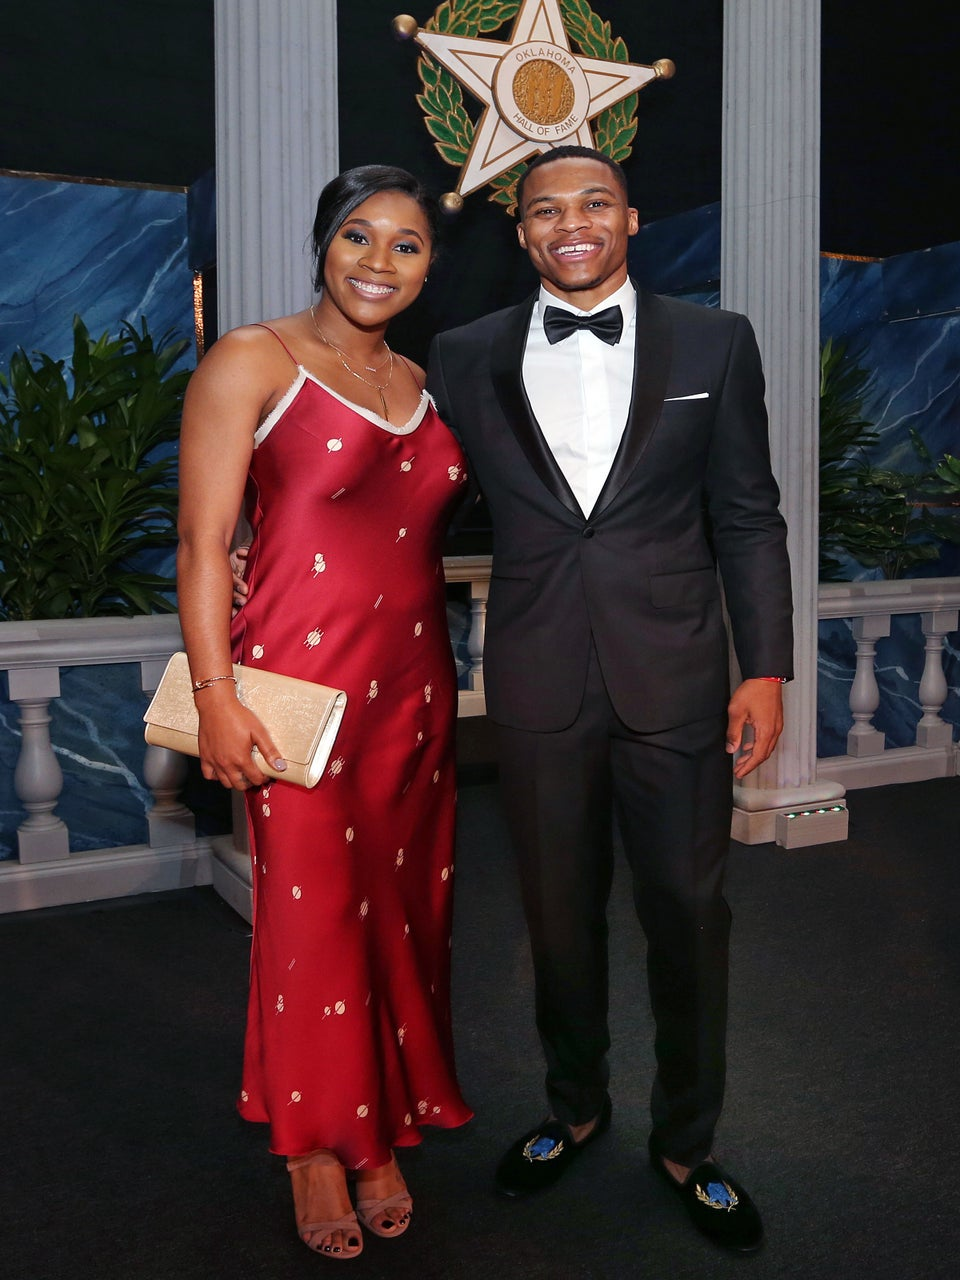 Russell Westbrook Gets Major Support From Wife Nina On His Hall Of Fame Night